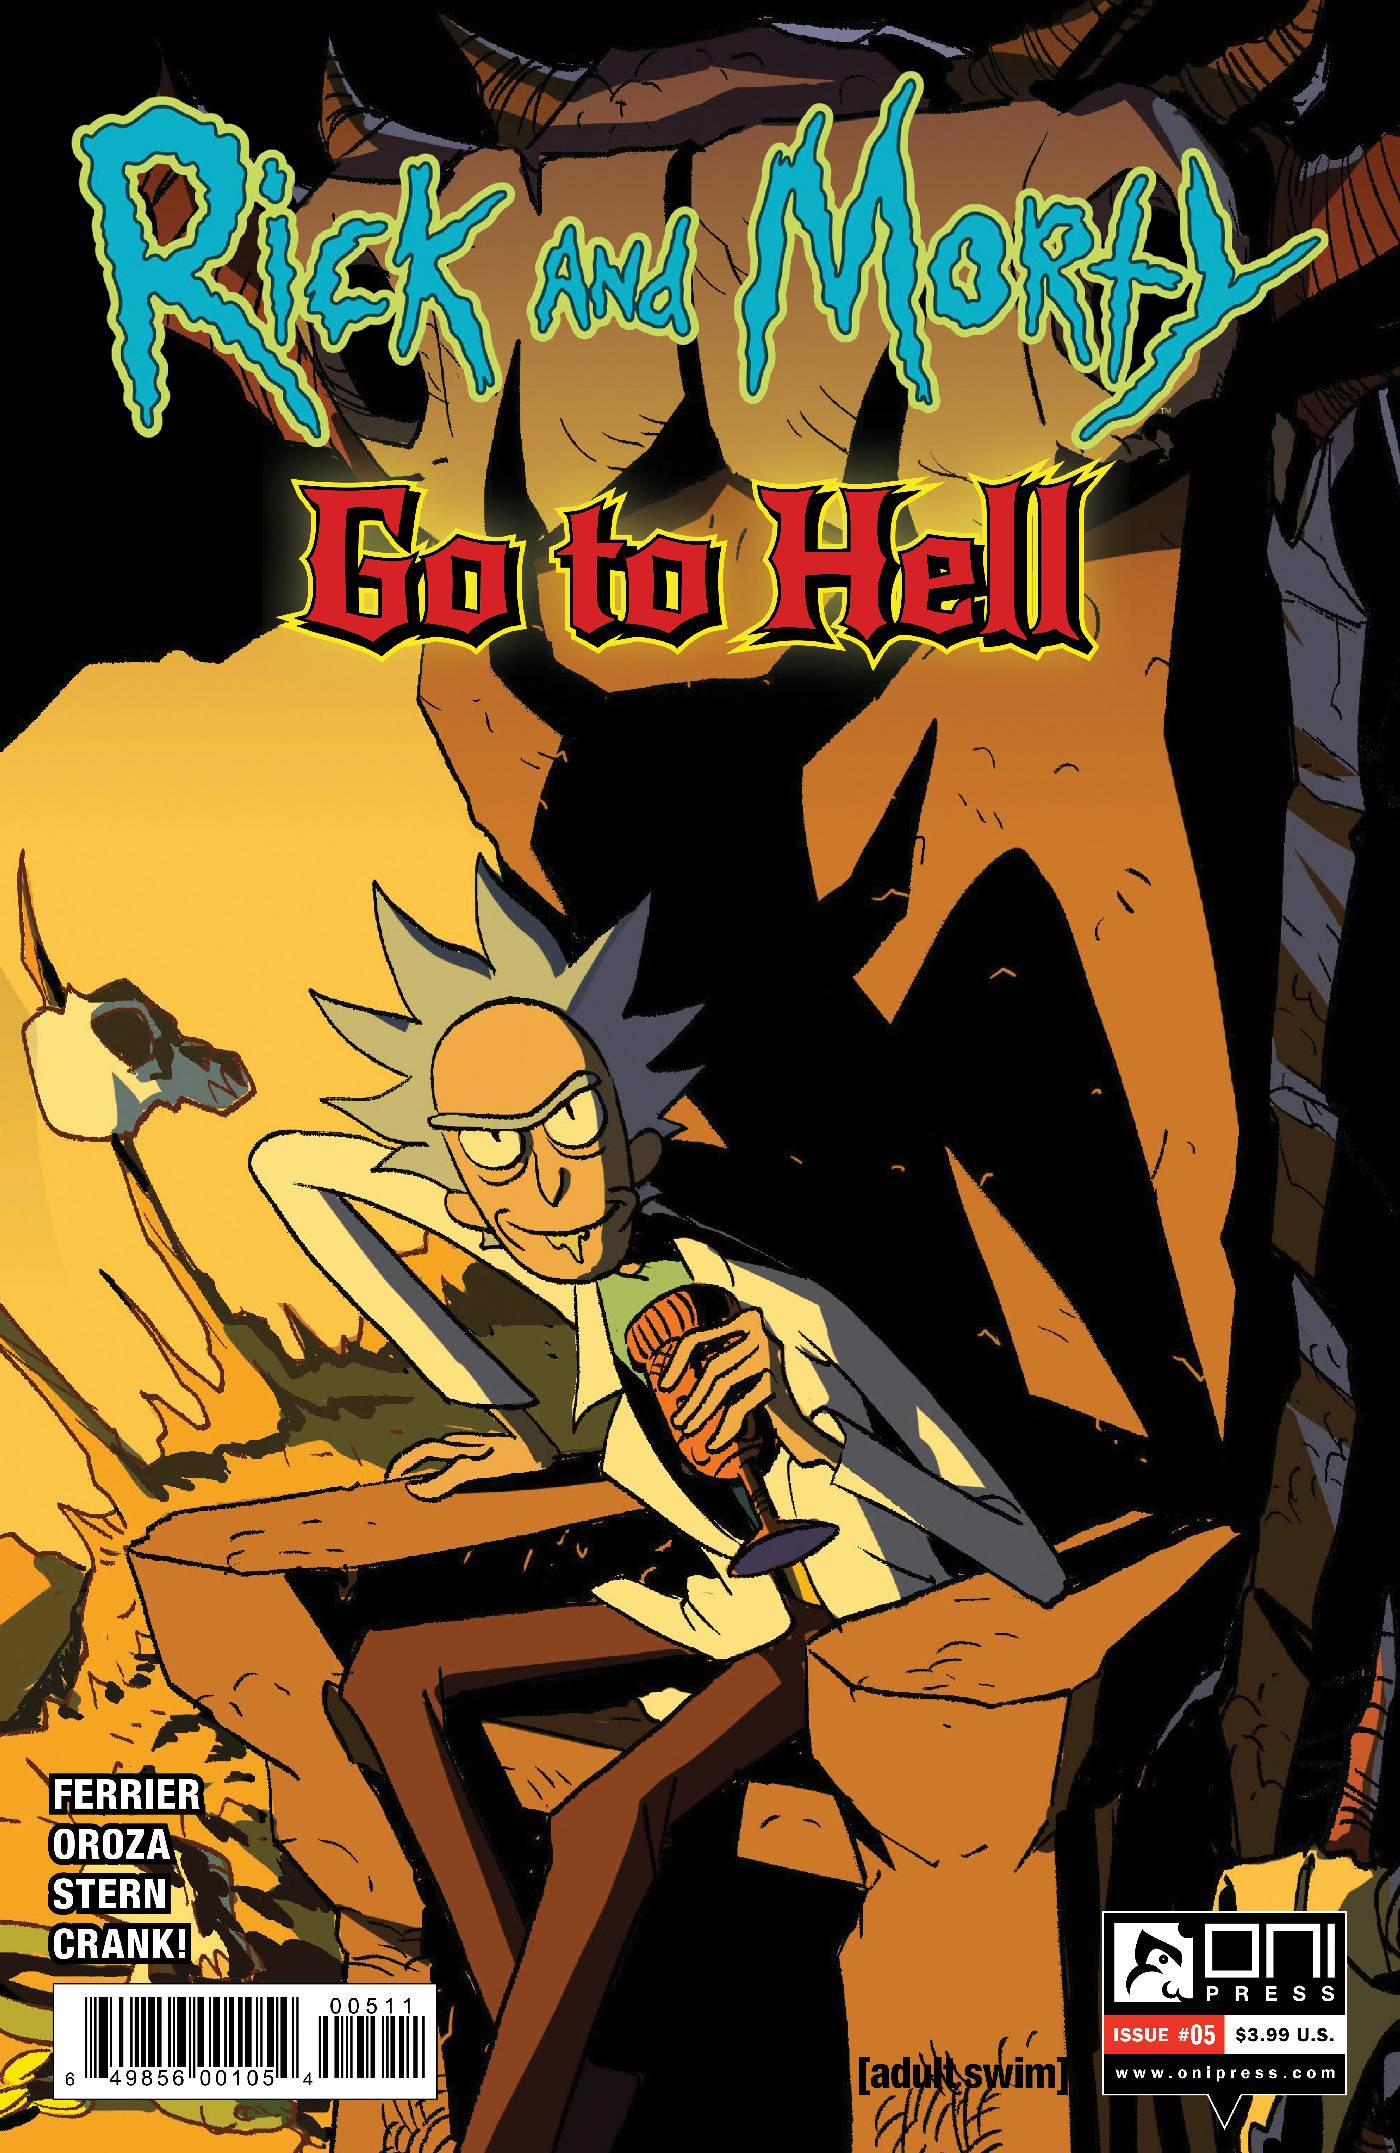 RICK AND MORTY GO TO HELL #5 CVR A